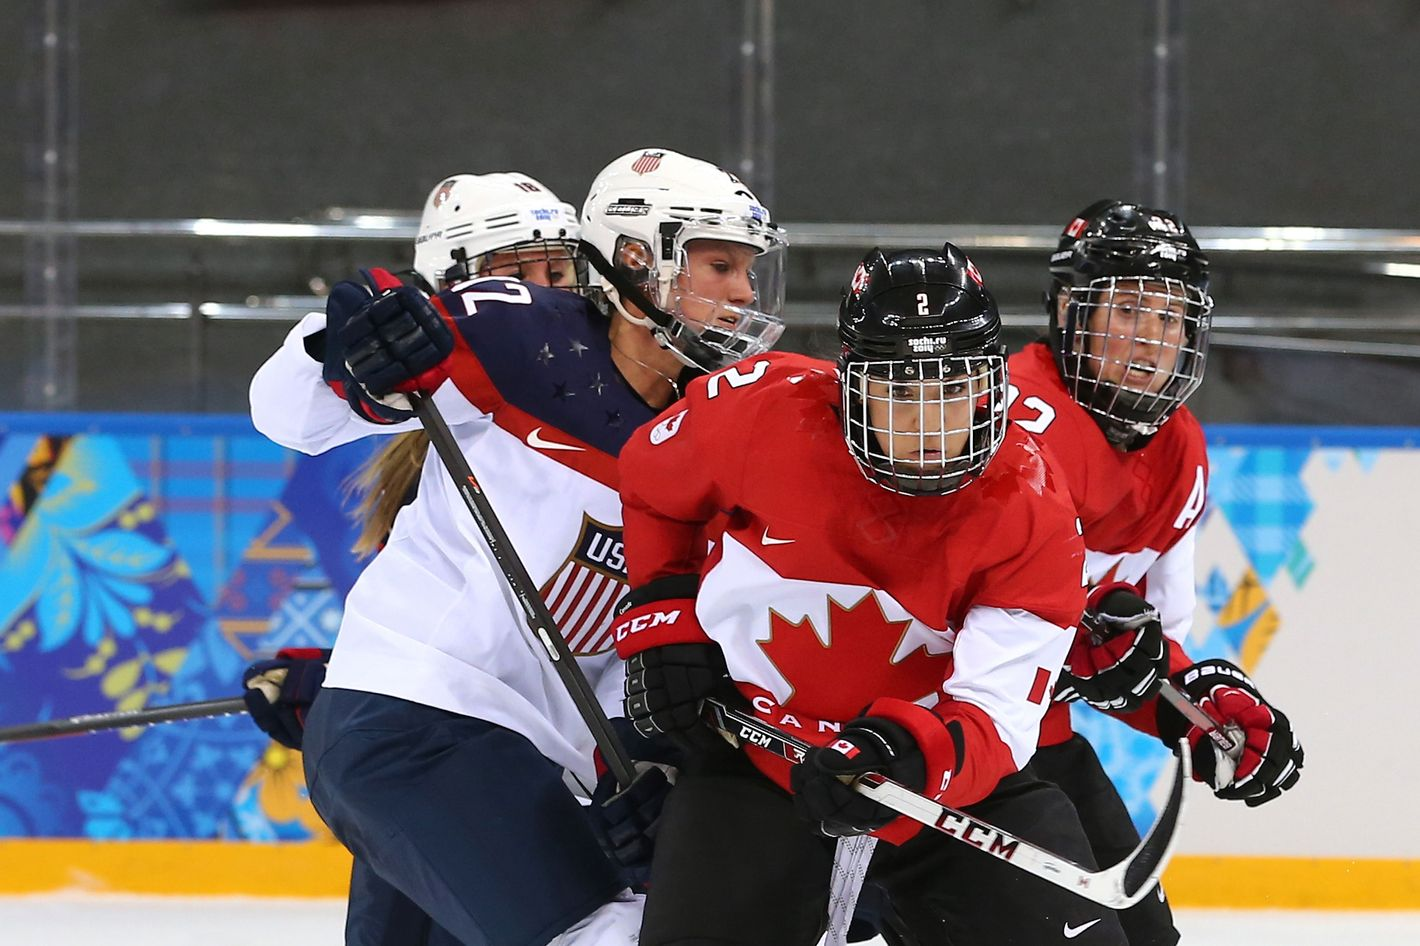 Meghan Agosta-Marciano #2 of Canada handles the puck against Lee Stecklein #2 of the United States in the second period during the Women's Ice Hockey Preliminary Round Group A game on day five of the Sochi 2014 Winter Olympics at Shayba Arena on February 12, 2014 in Sochi, Russia.